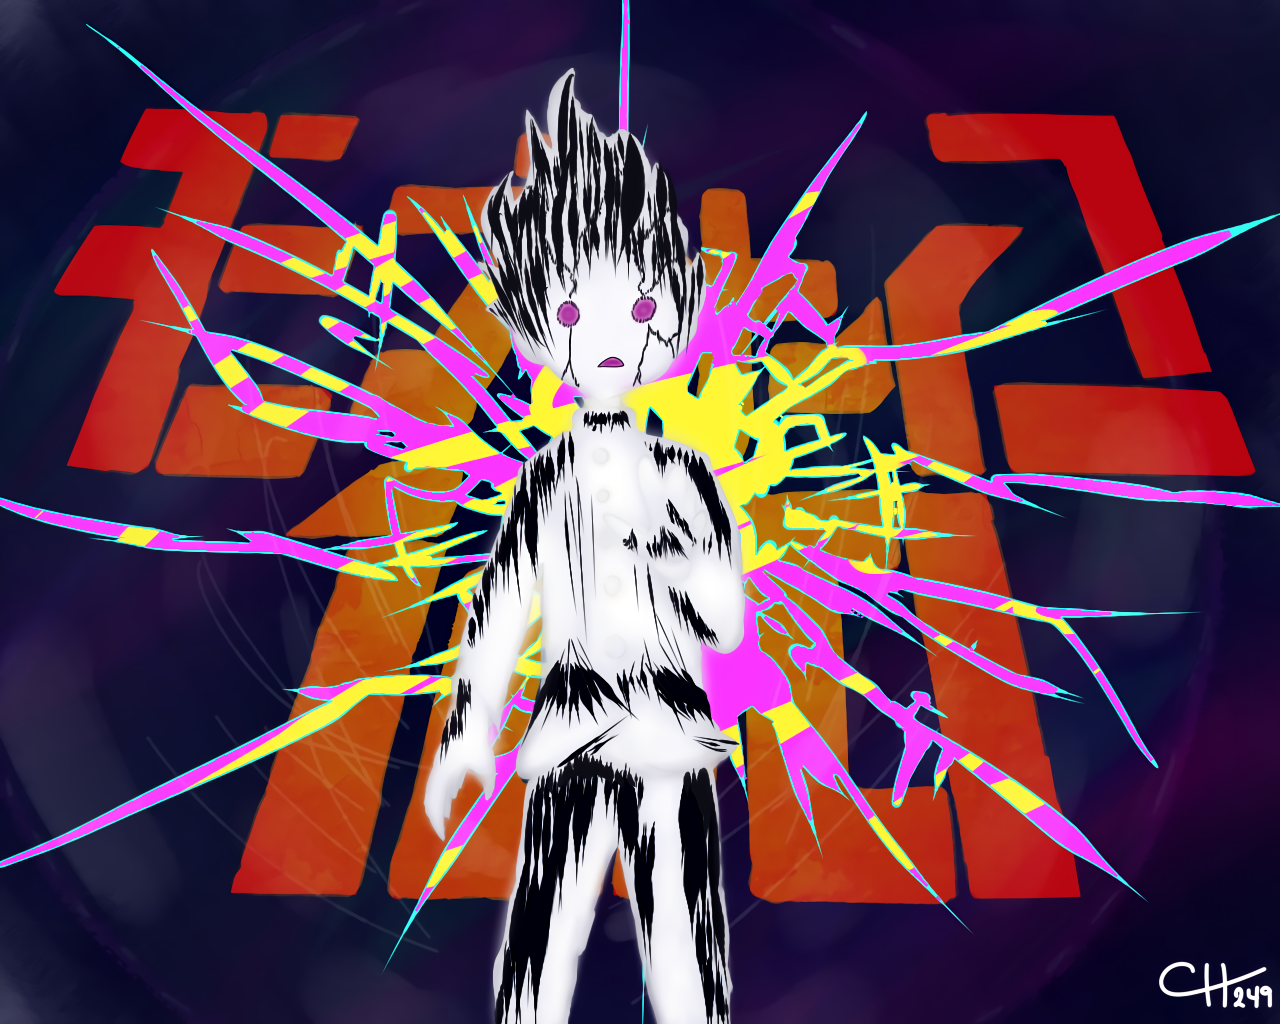 Free Download 103 Mob Psycho 100 Hd Wallpapers Background